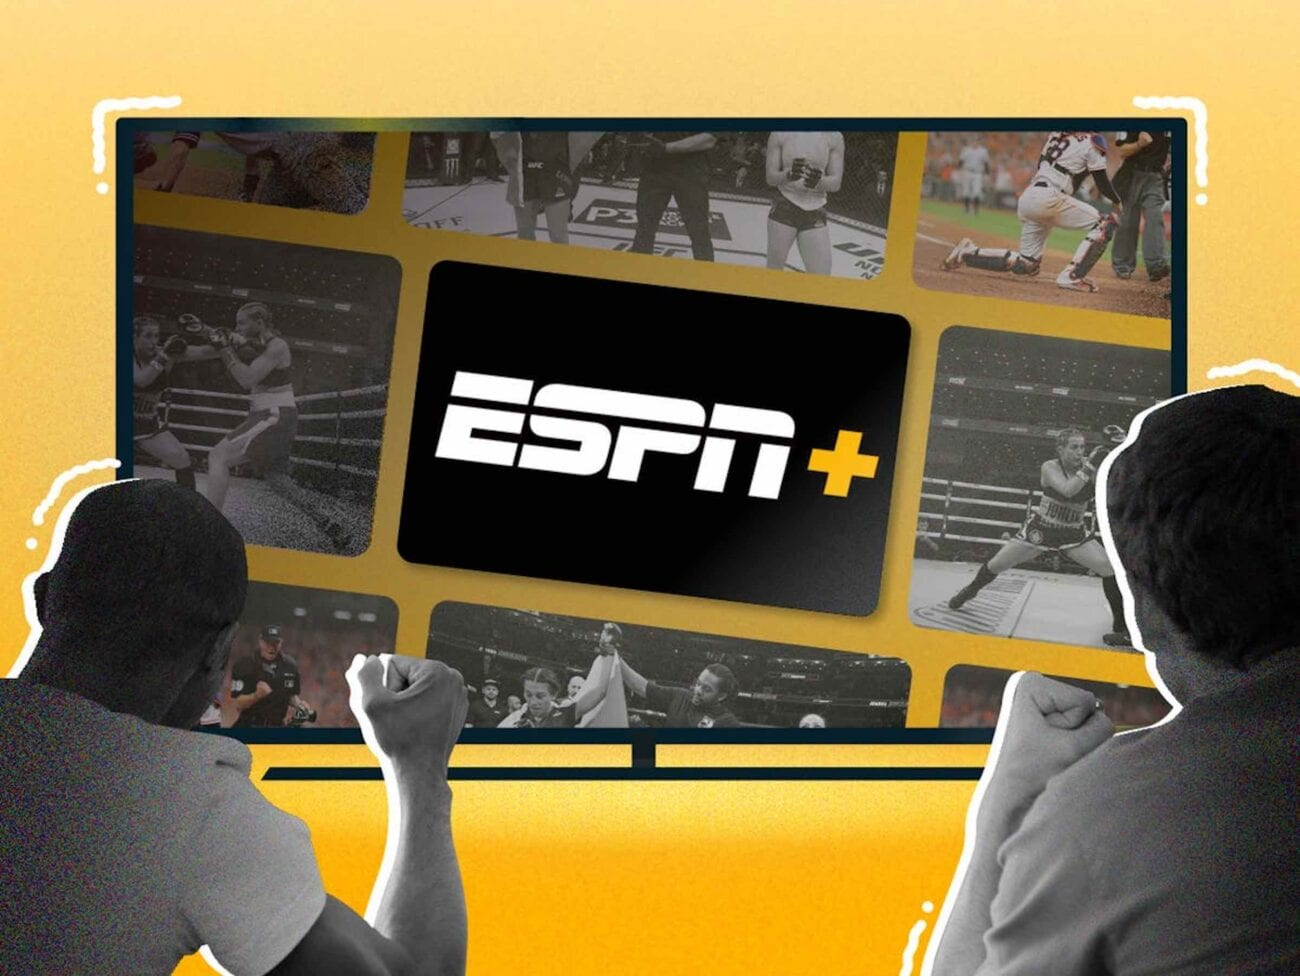 ESPN Plus differs from other streaming applications in quite a few ways. Here is everything that you need to know about ESPN Plus.